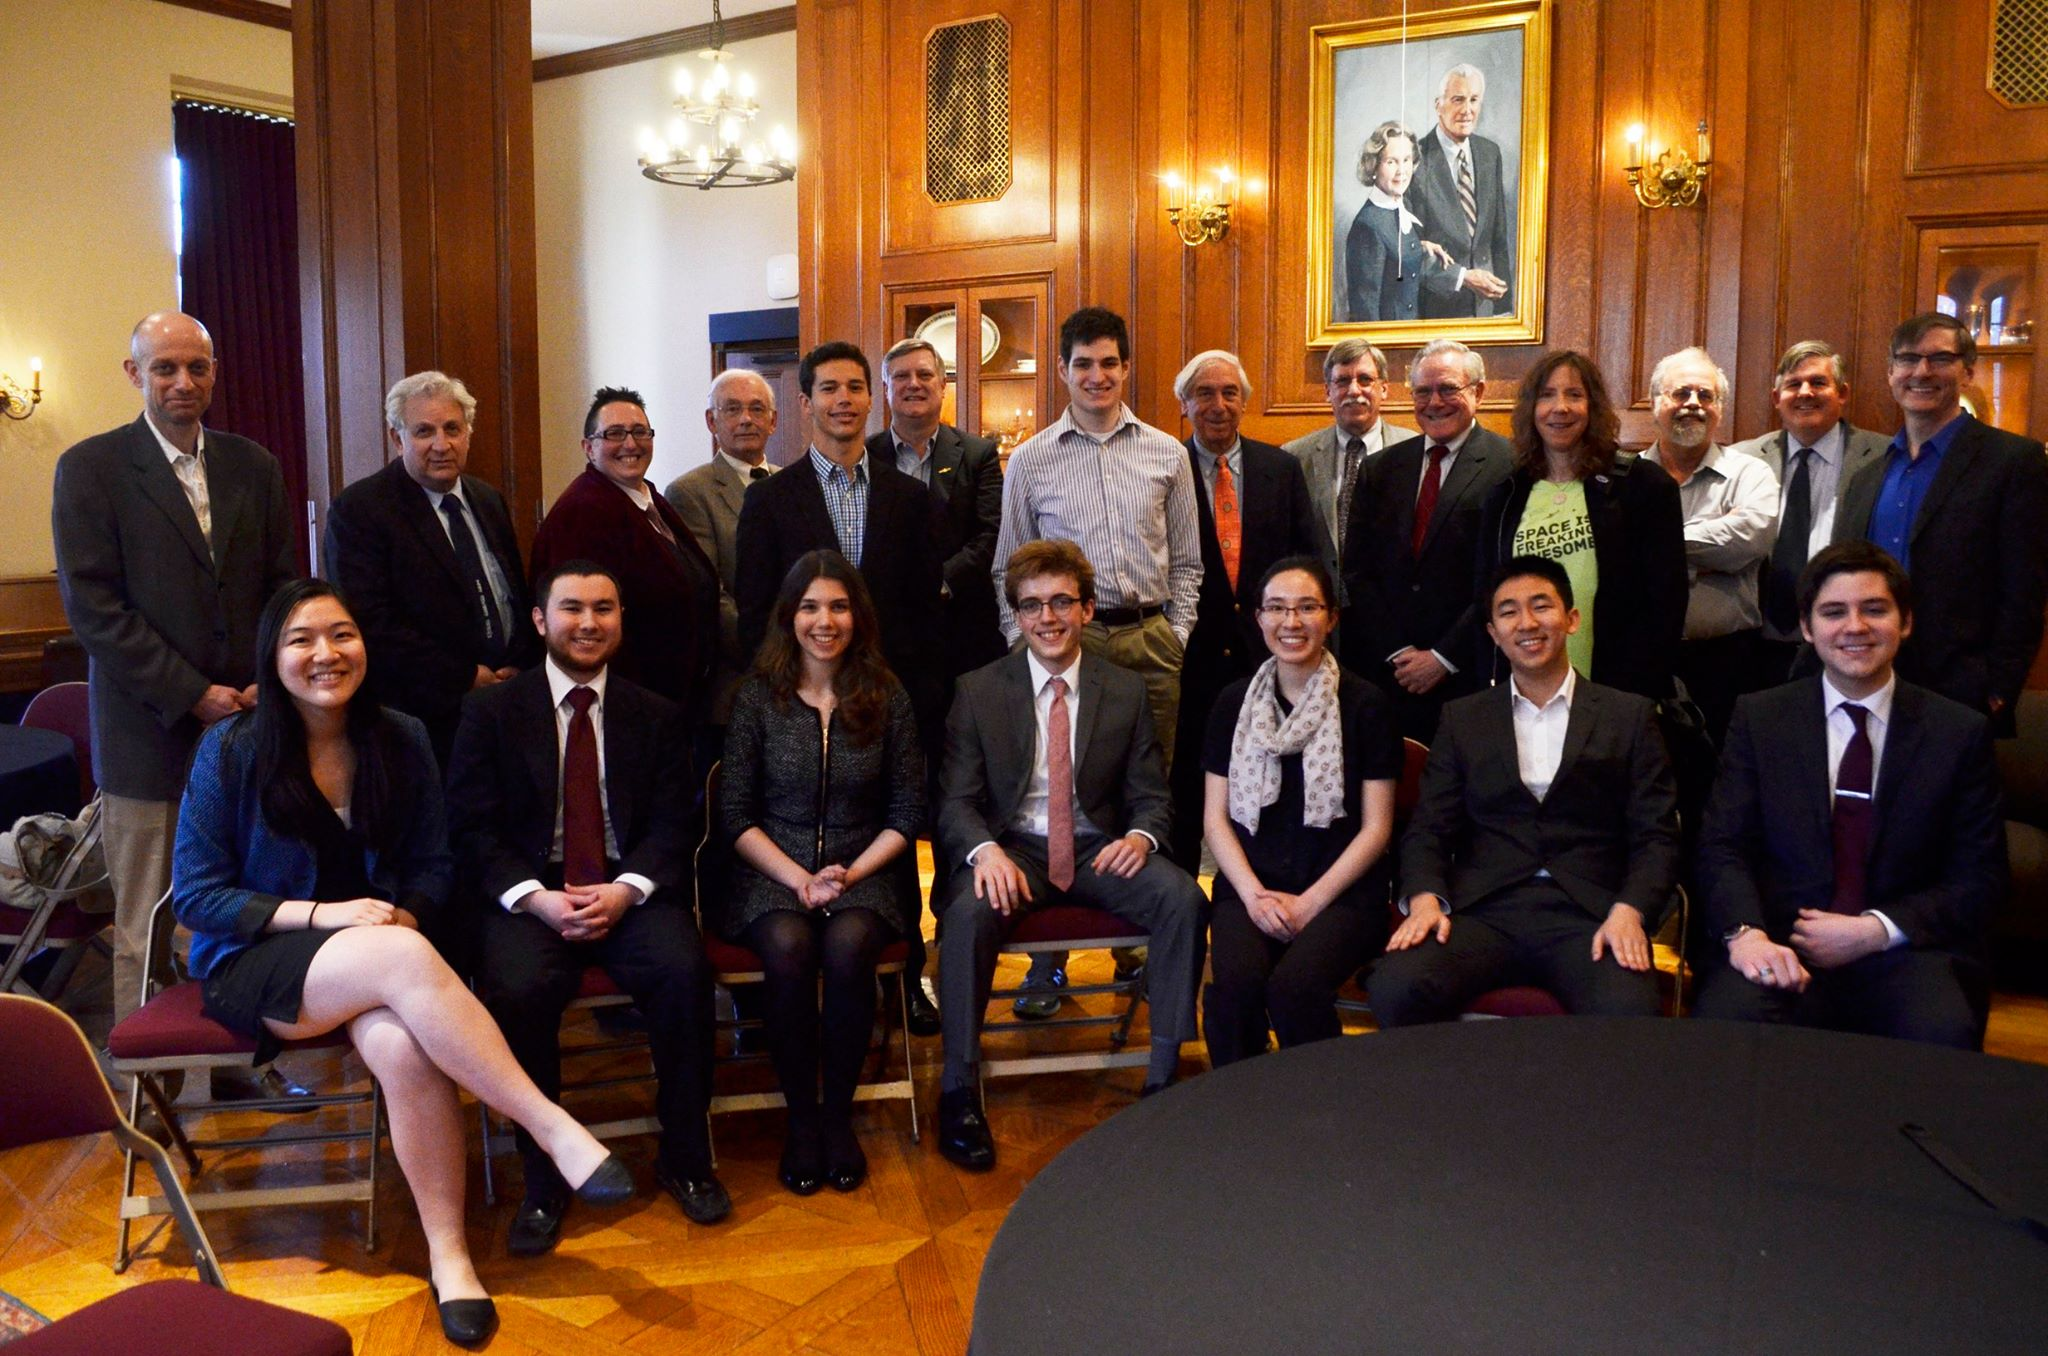 Group photo of Chicago Society members and speakers from last year's Spring Conference